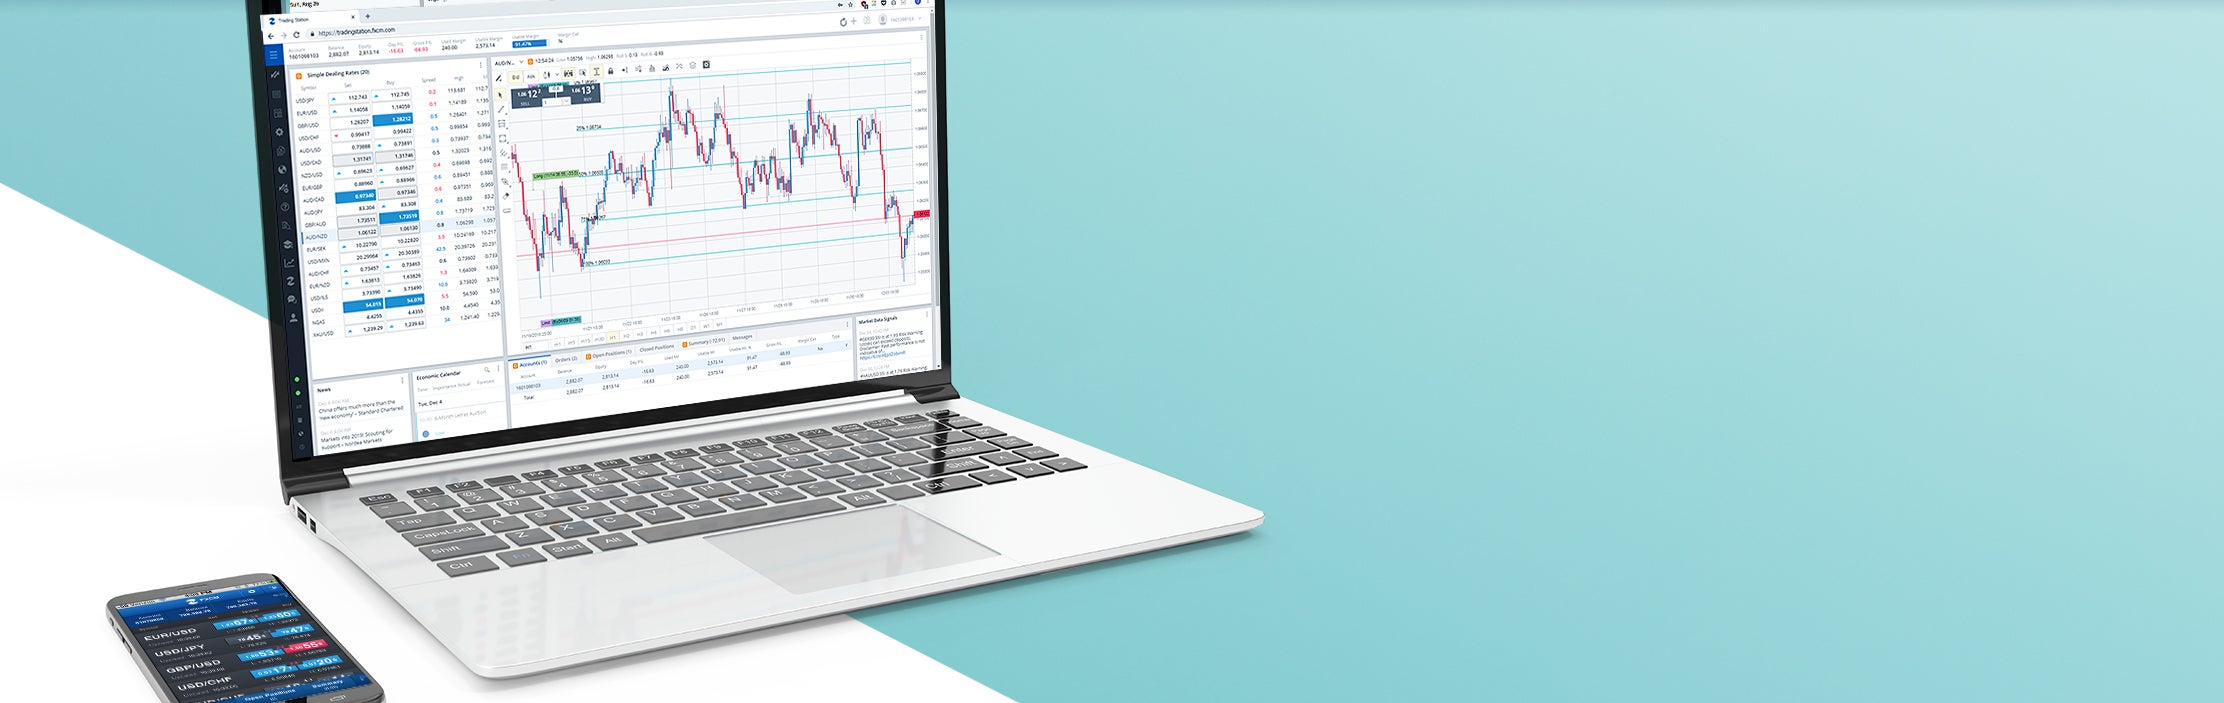 Forex trading station